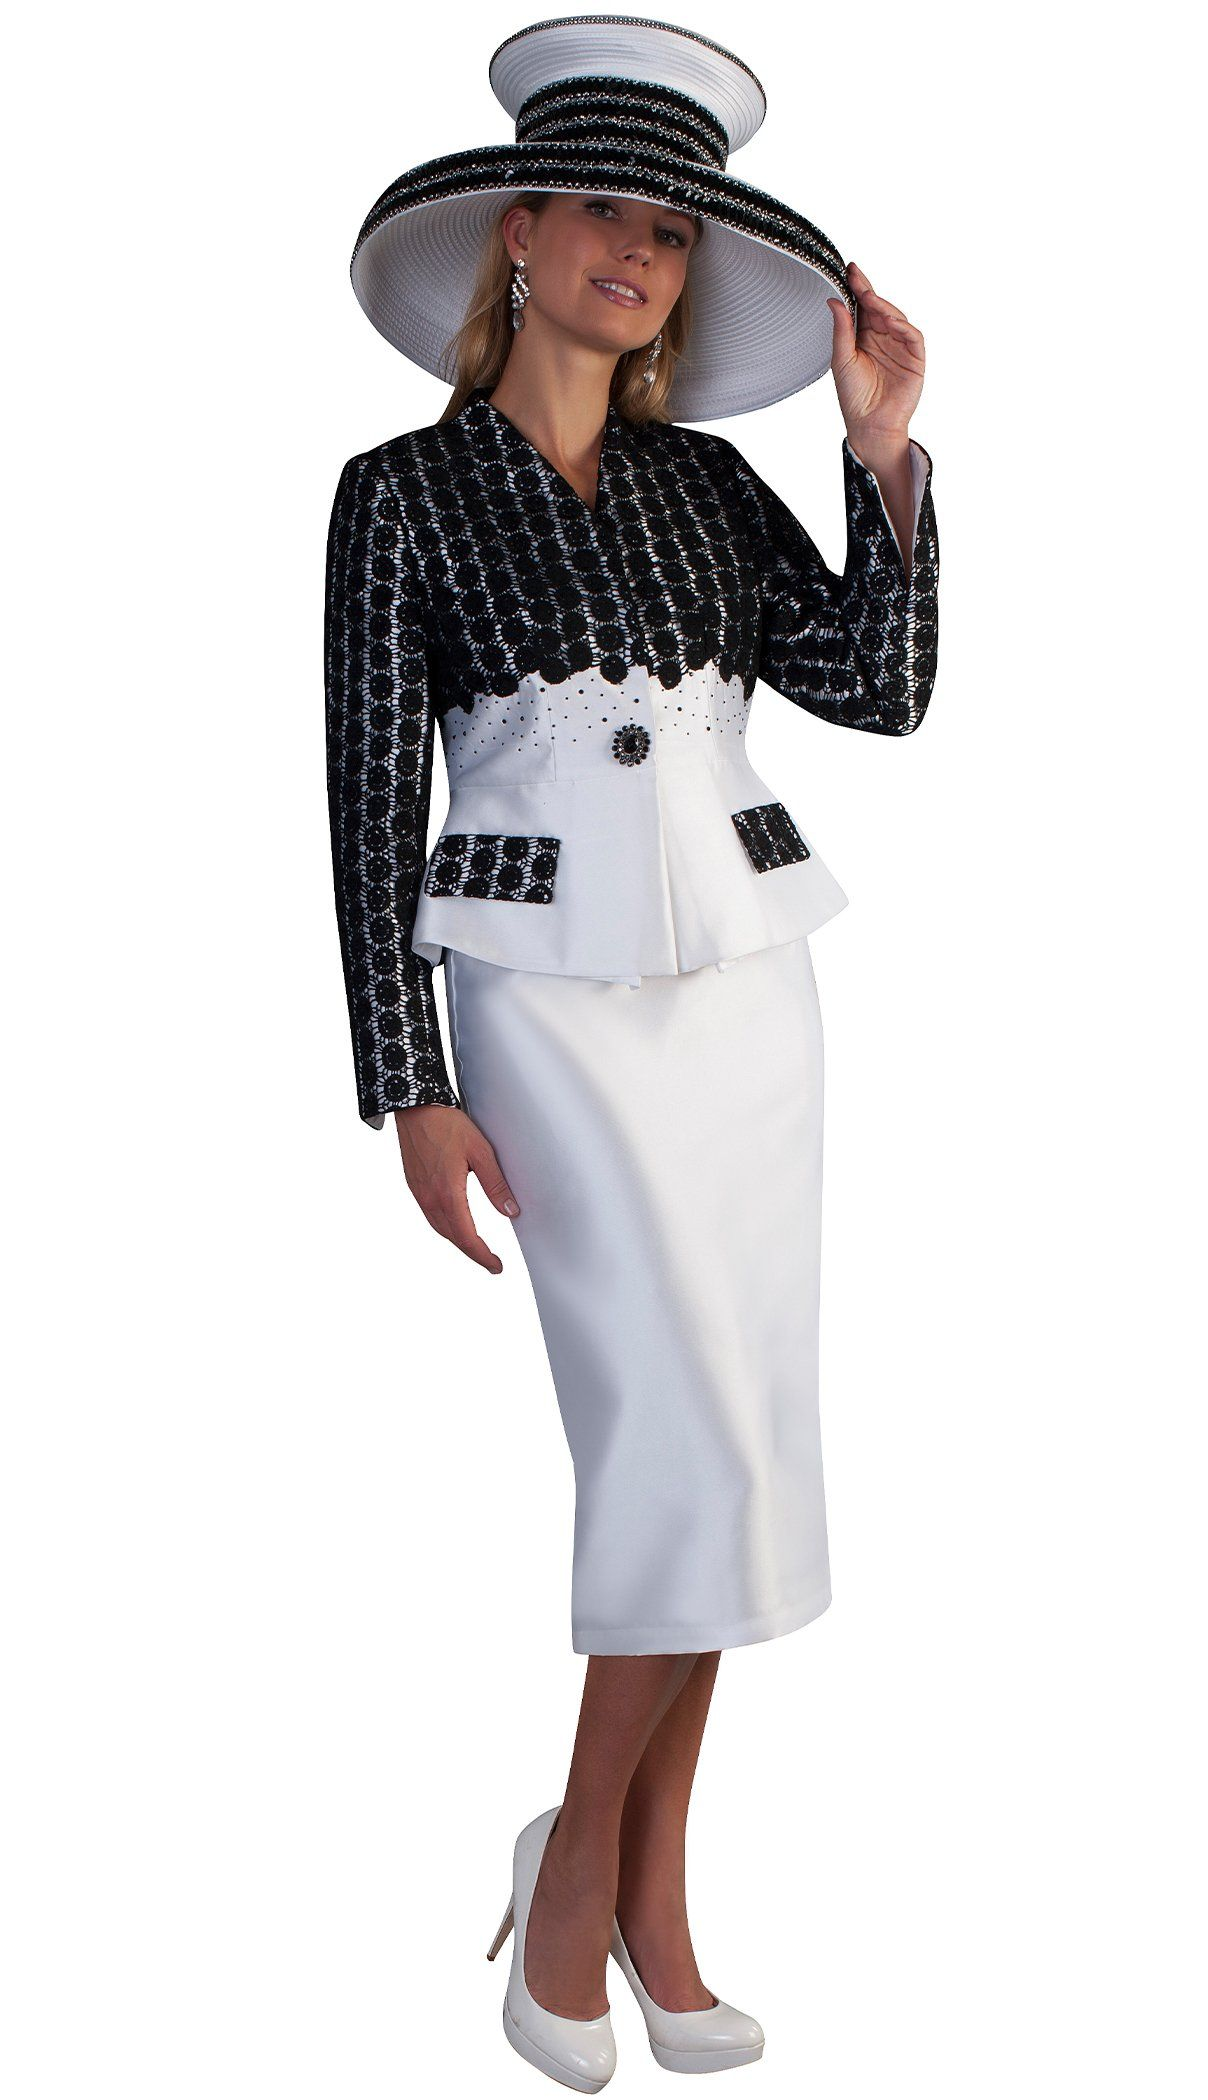 792bb956841 Tally Taylor Suit 4682 in 2019